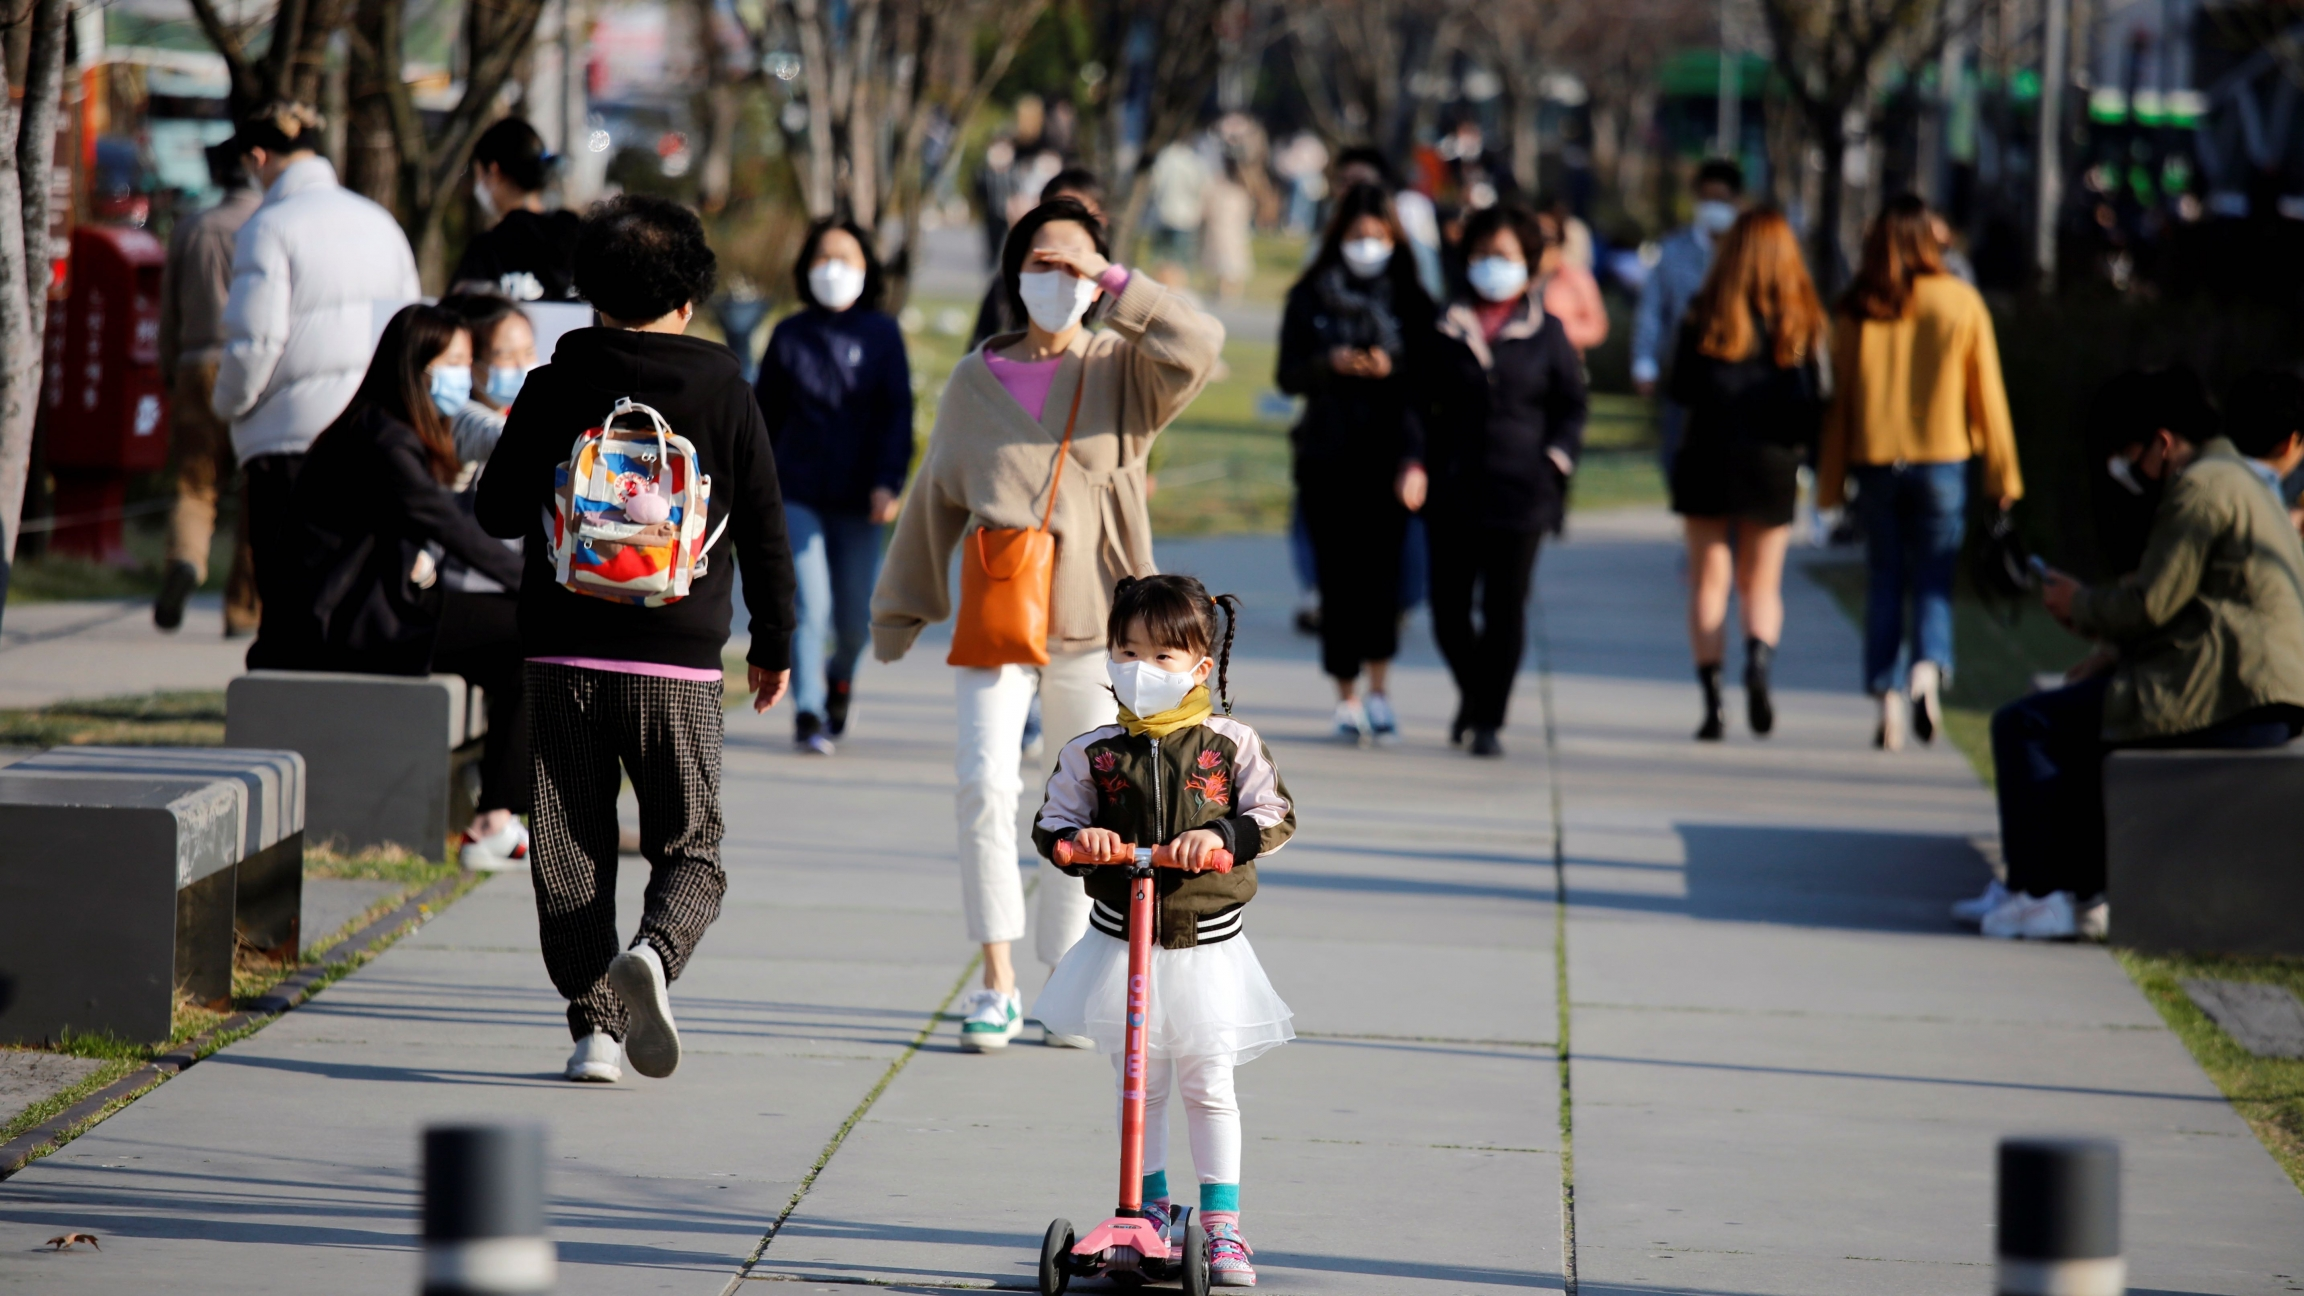 A girl wearing a protective face mask to prevent contracting the coronavirus disease (COVID-19) rides a toy kick scooter at a park in Seoul,SouthKorea, April 3, 2020.